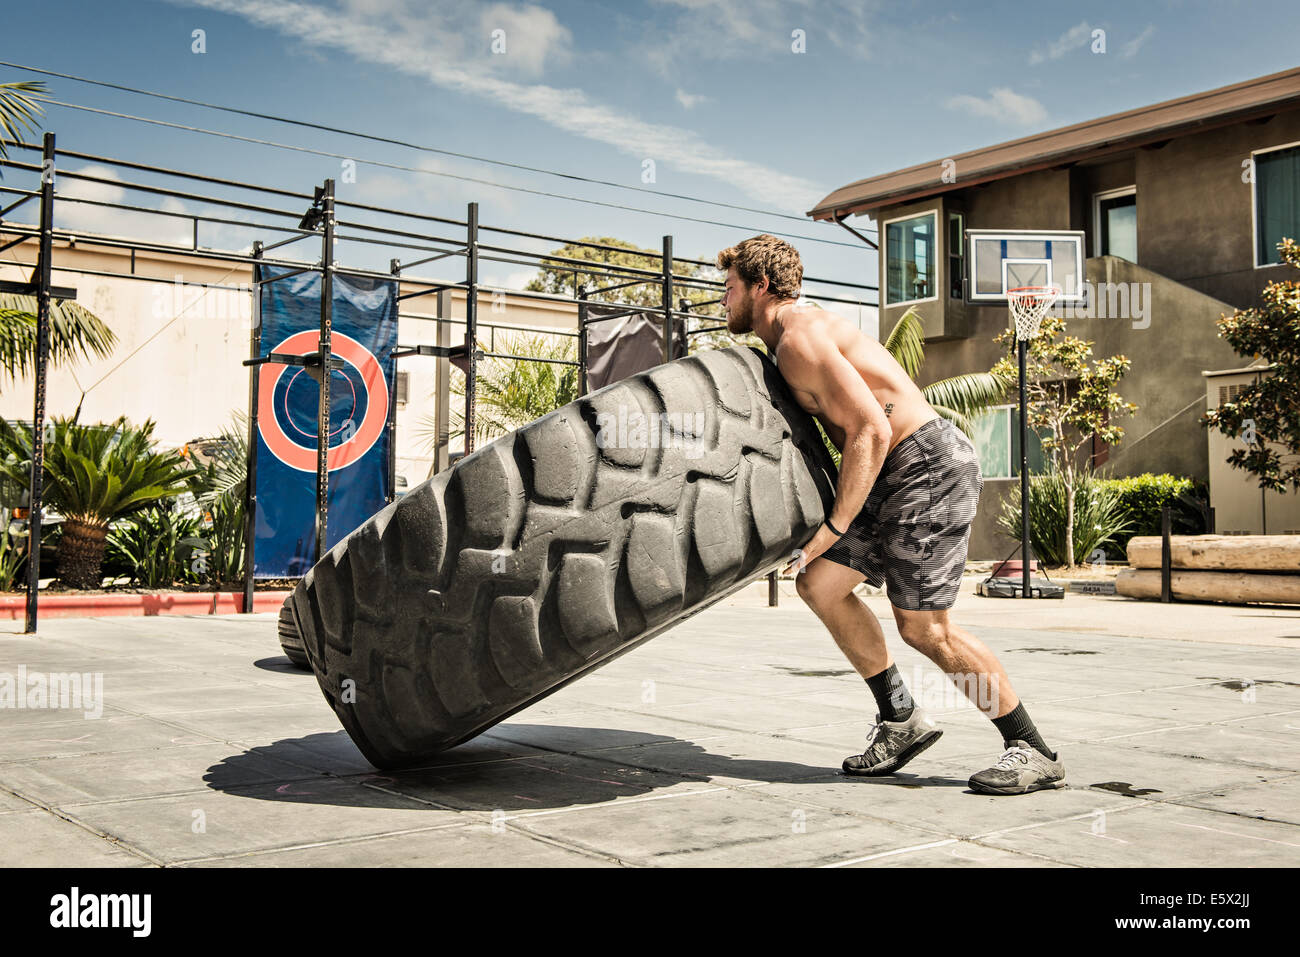 Man lifting huge wheel in basketball court - Stock Image